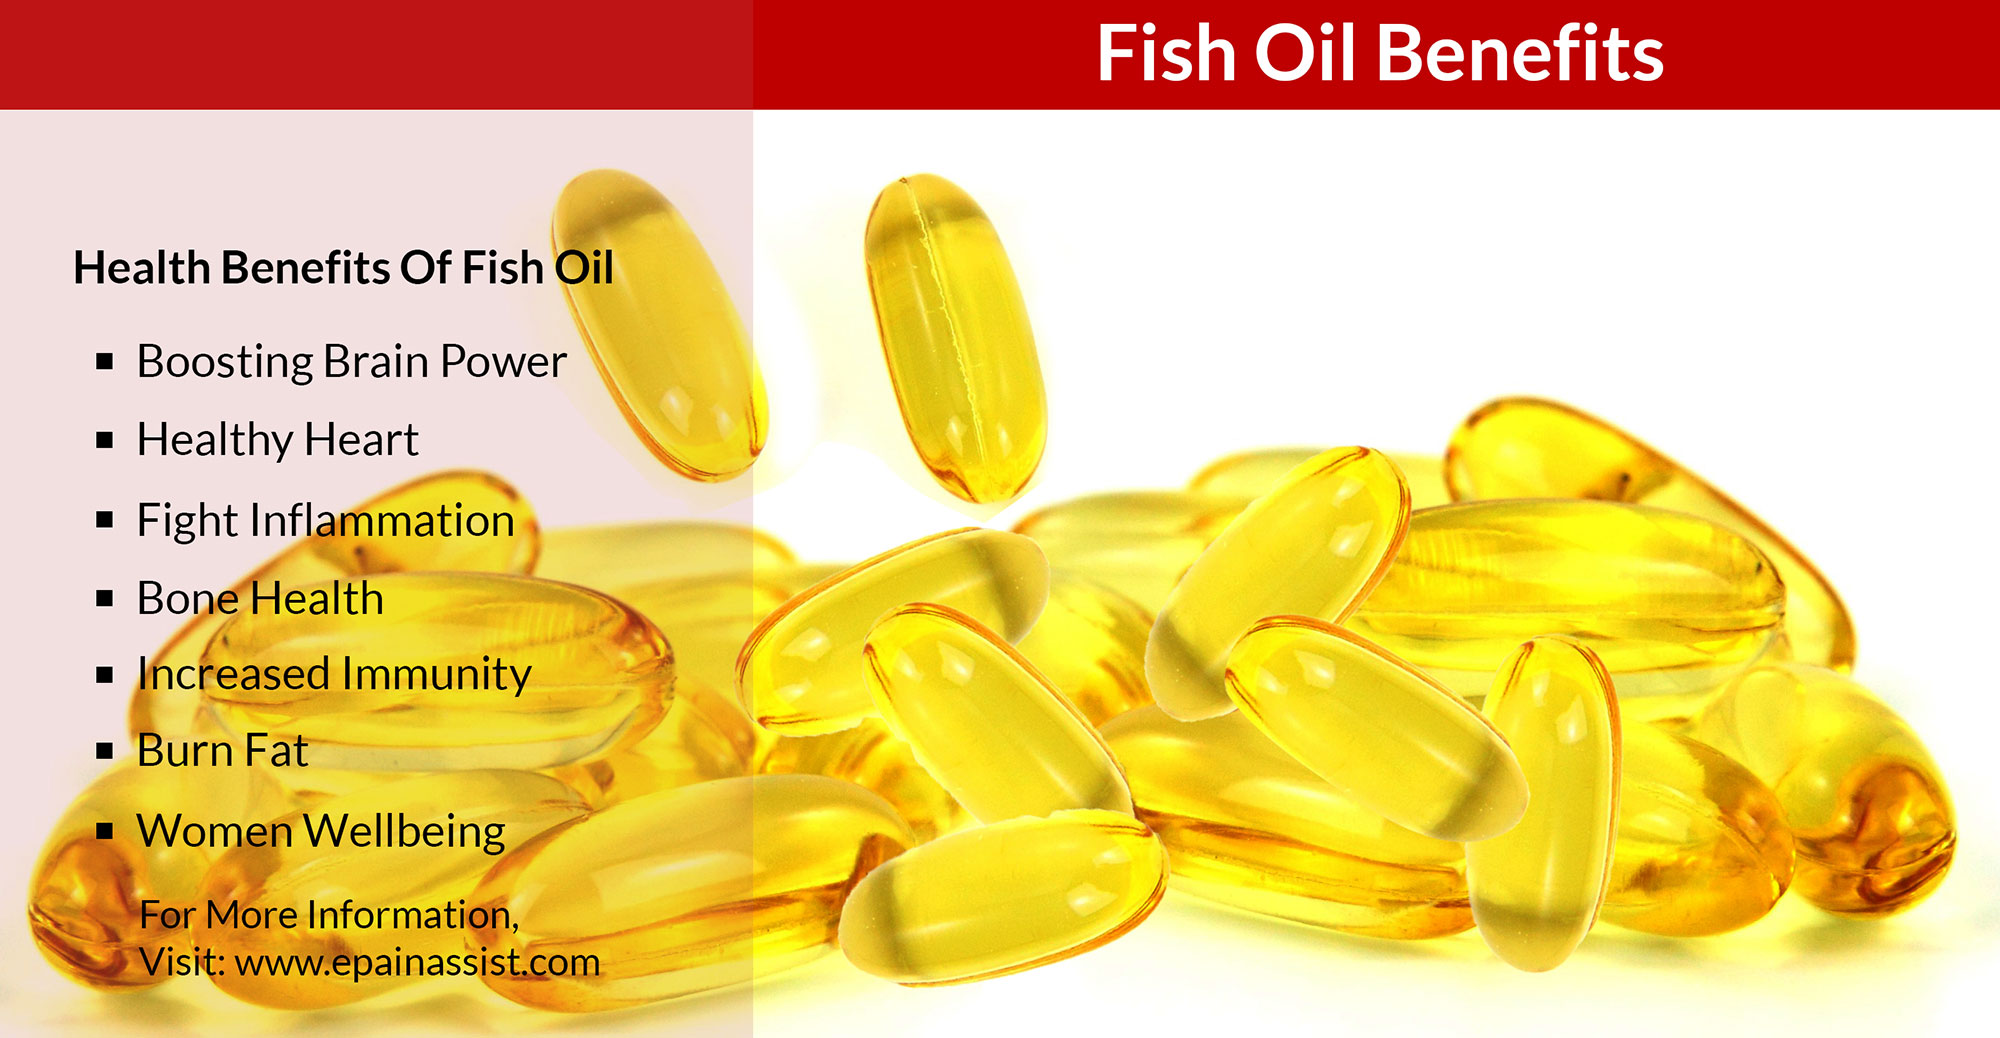 fish oil benefits boosts brain power healthy heart fights